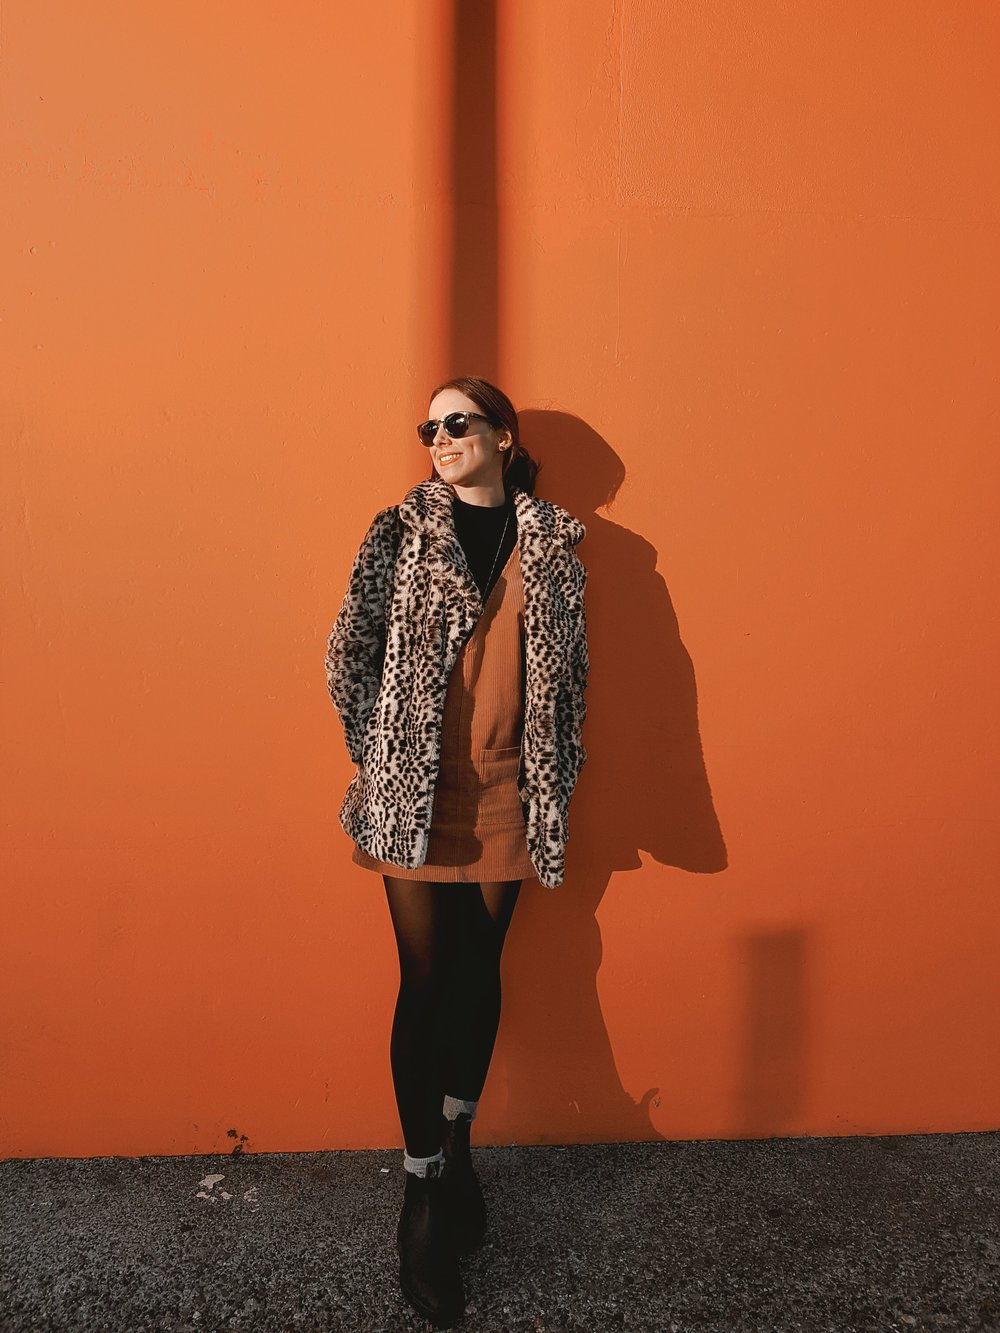 MONDAY - Dynamite coat, Forever21 corduroy dress, Dynamite turtleneck, Blundstone boots